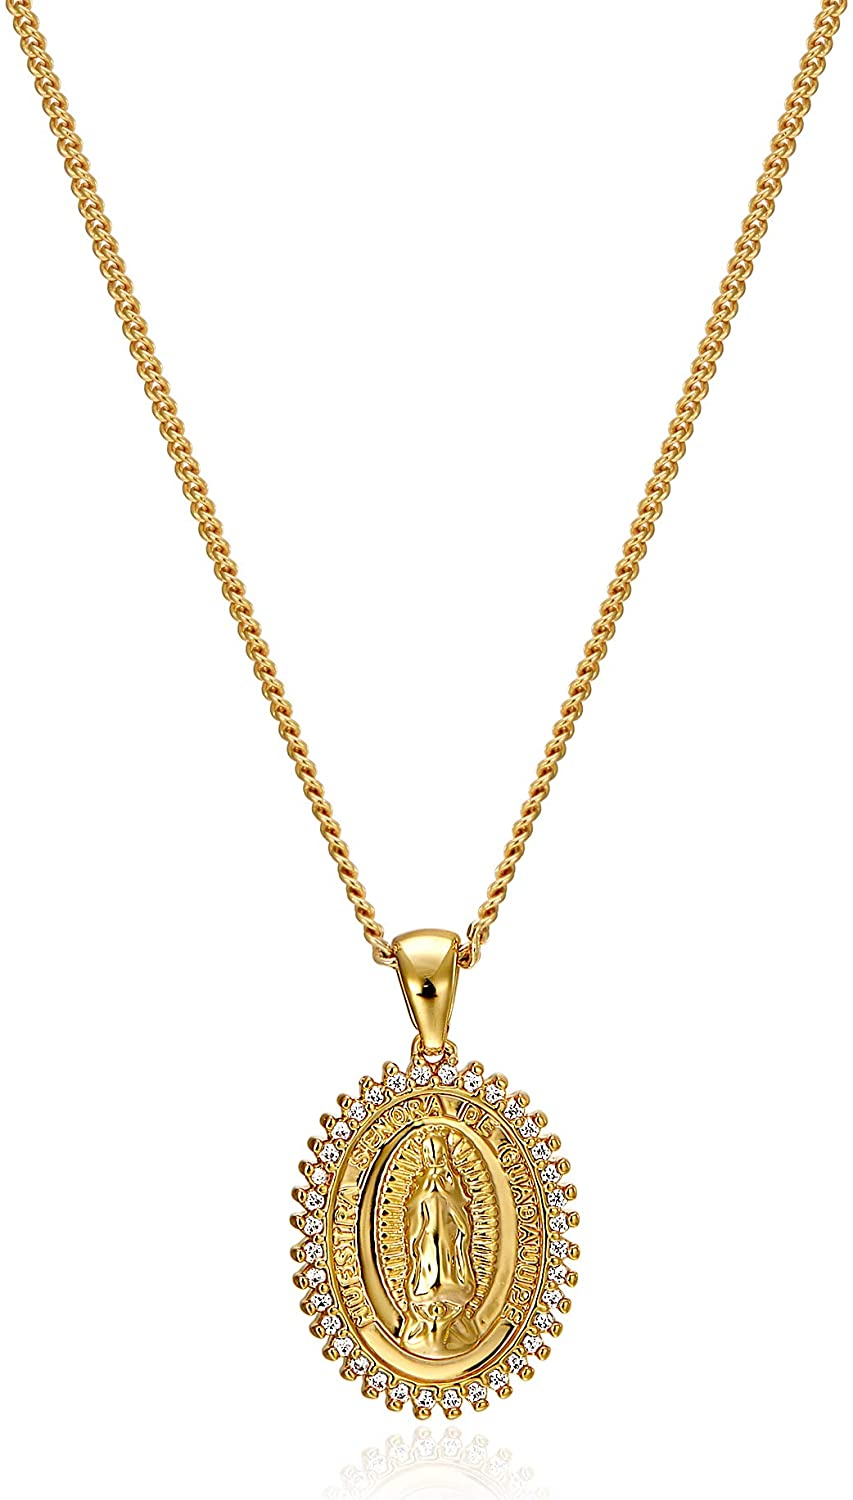 ACC PLANET Virgin Mary Necklace Gold Plated Paperclip Chain Christian Jewelry Rhinestone Miraculous Medal Pendant Gold Necklaces for Women Mothers Day